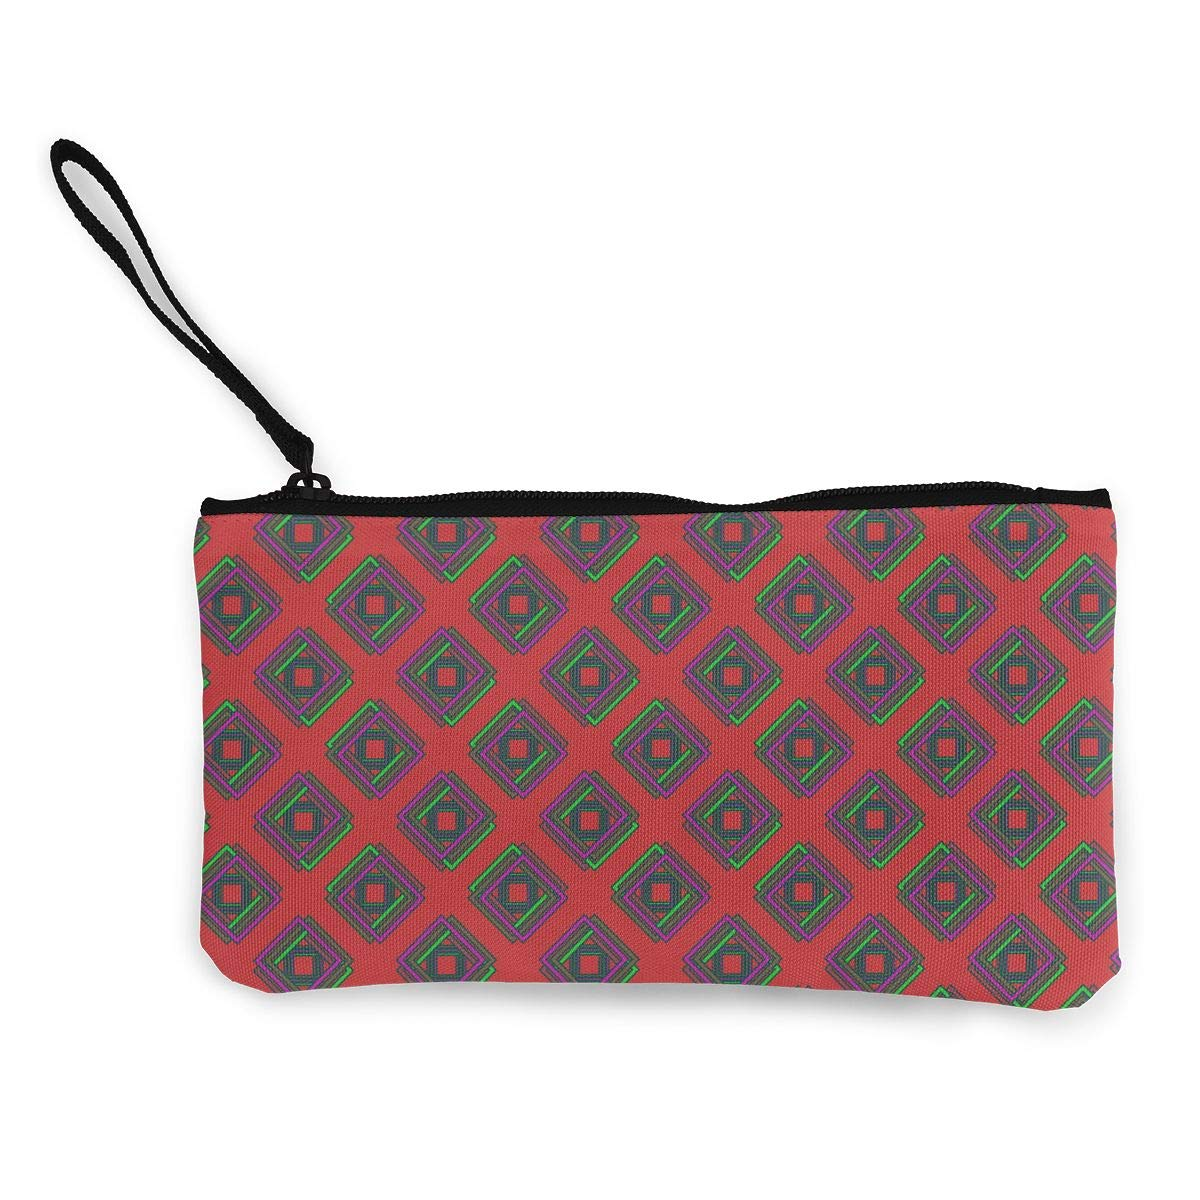 Abstract Color Pattern Canvas Makeup Bag with Zipper for Women Bk55Oi/&/& Womens Fashion Purse